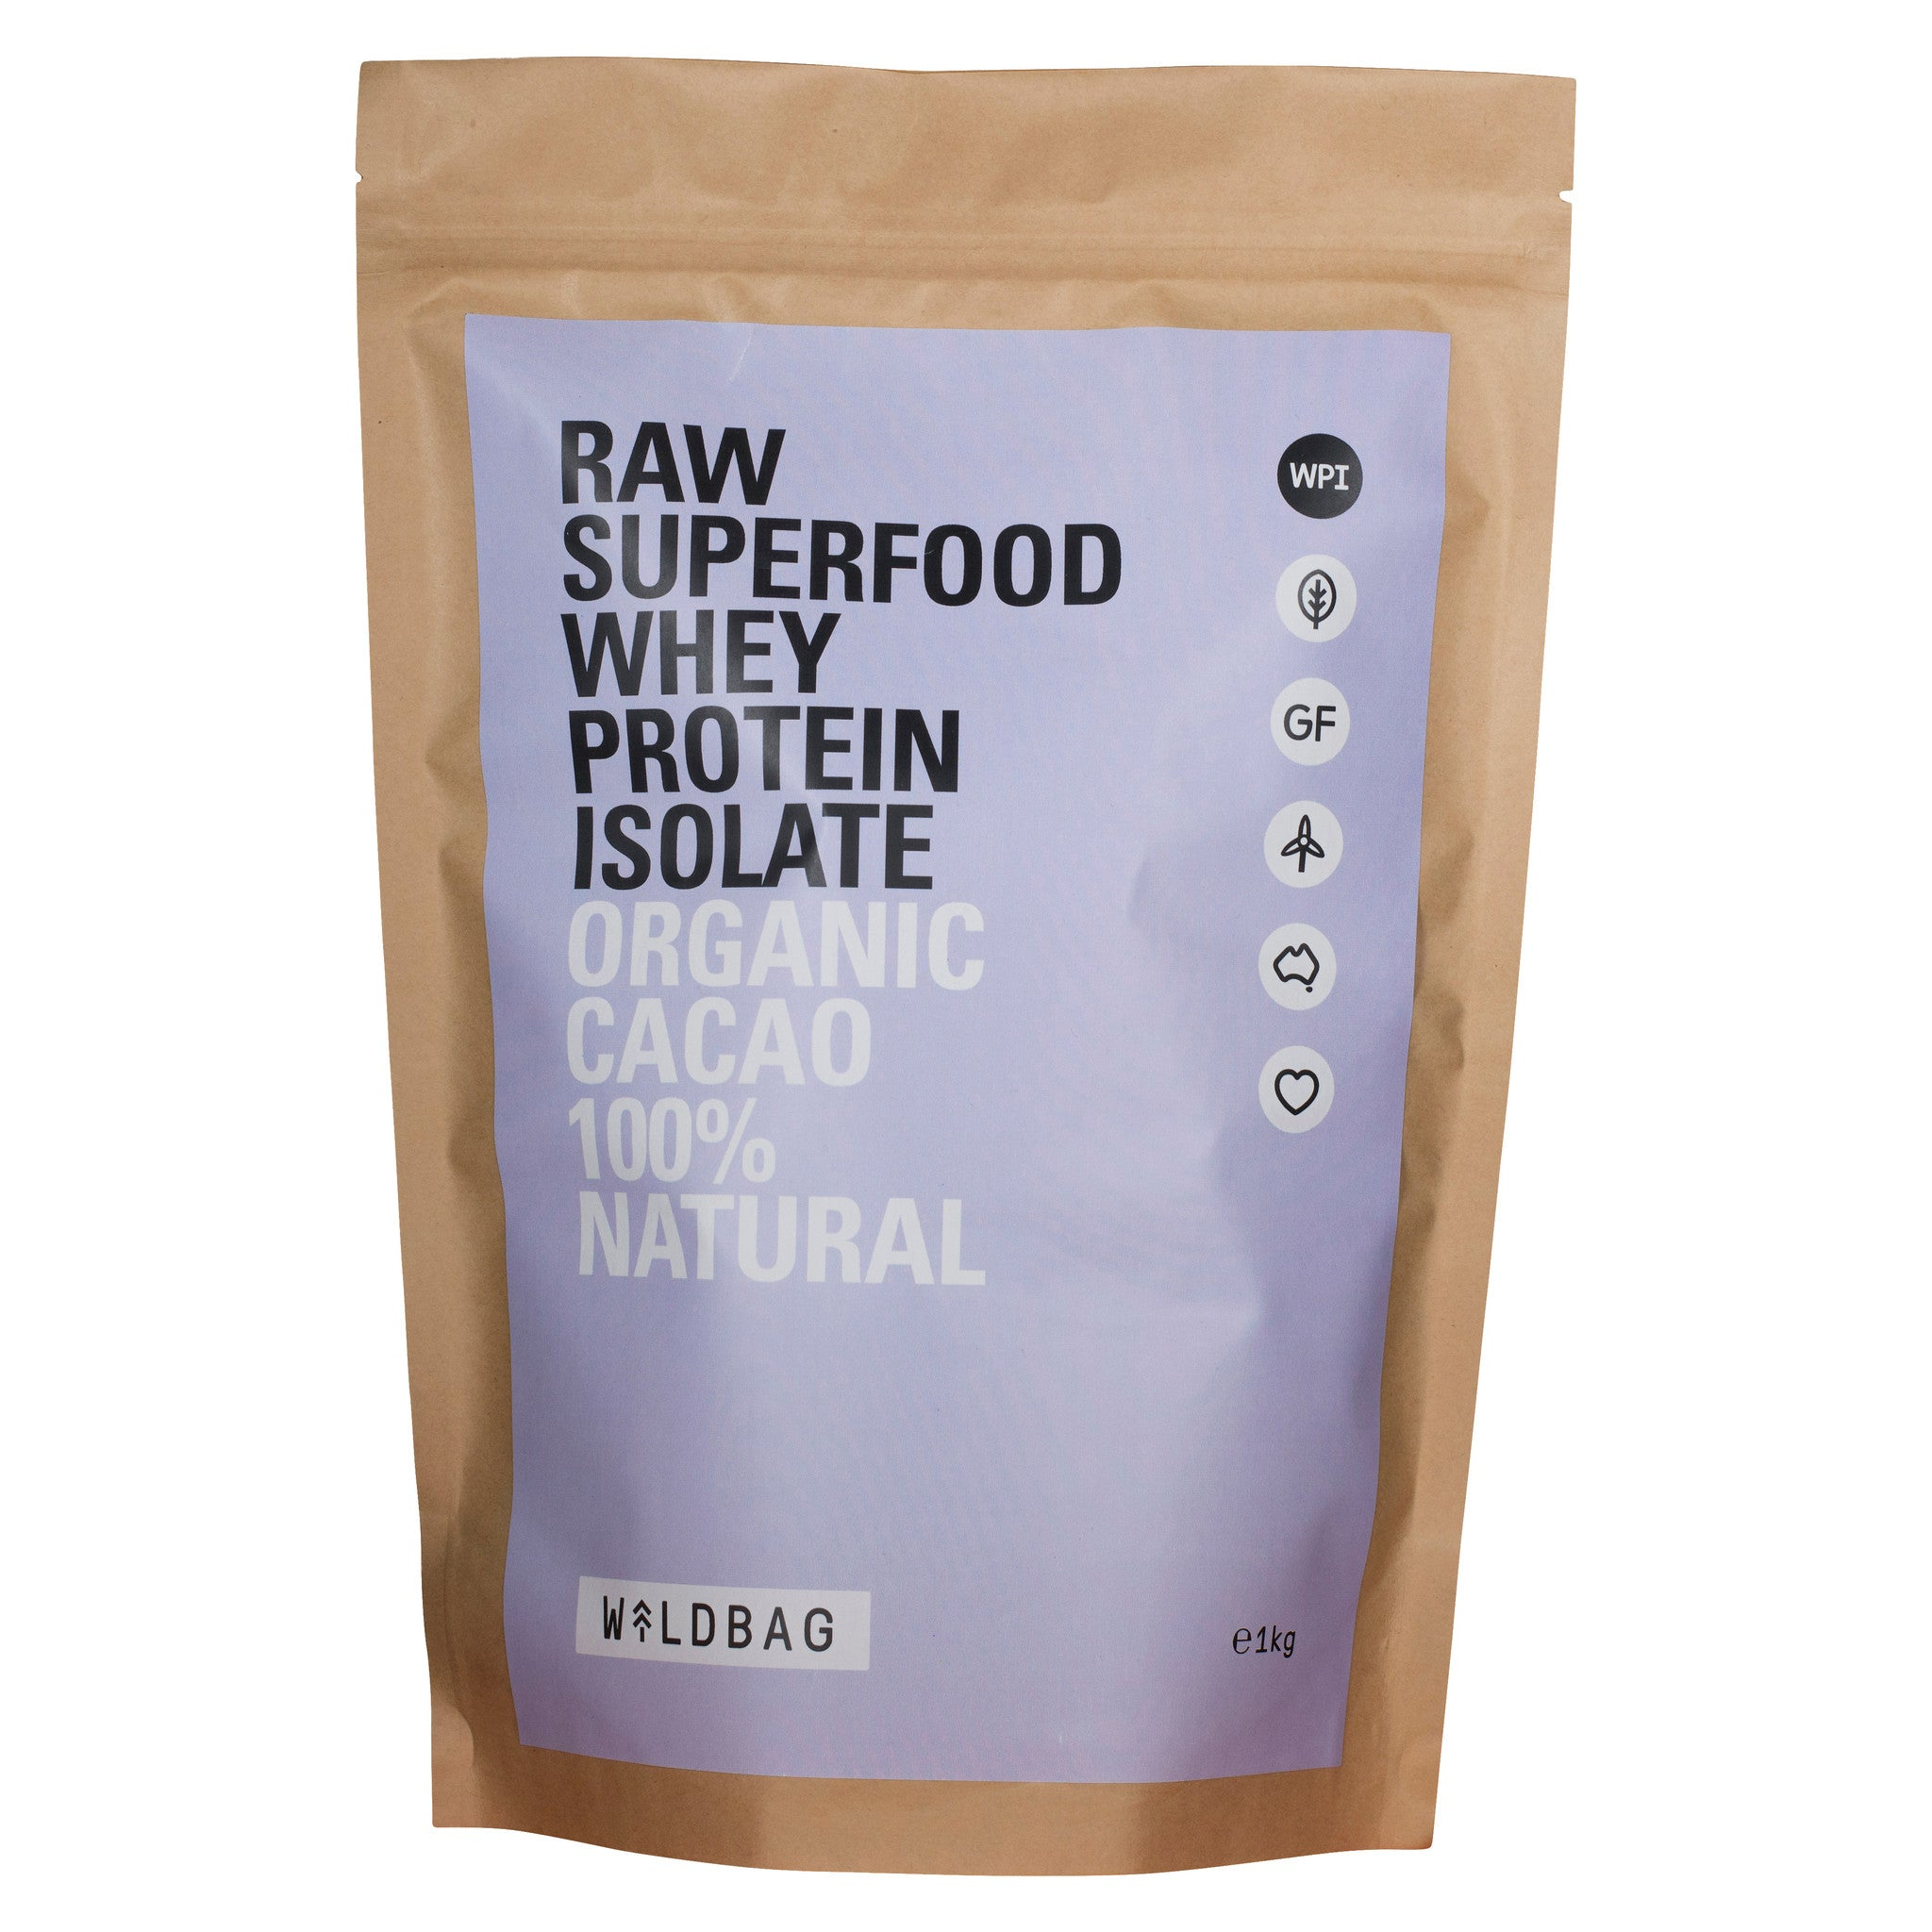 Wildbag Raw Superfood Whey Protein Isolate - Organic Cacao